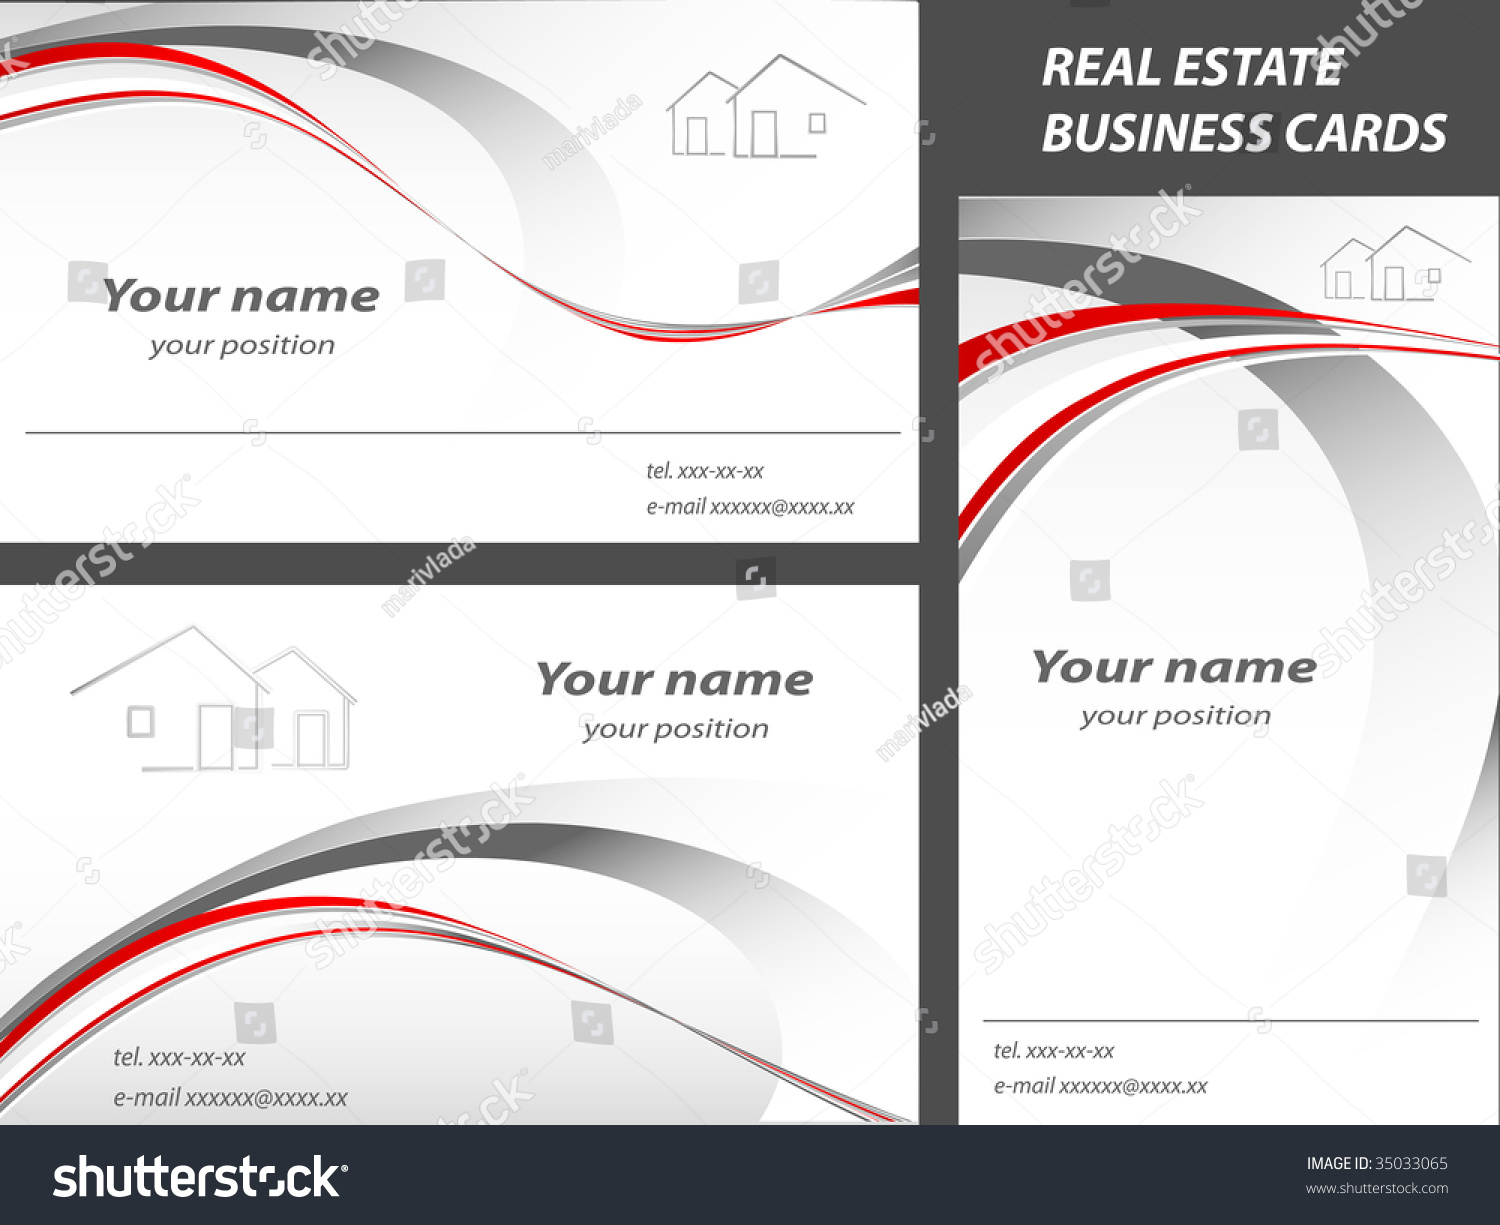 Vector business cards real estate construction stock vector vector business cards for real estate or construction company magicingreecefo Images